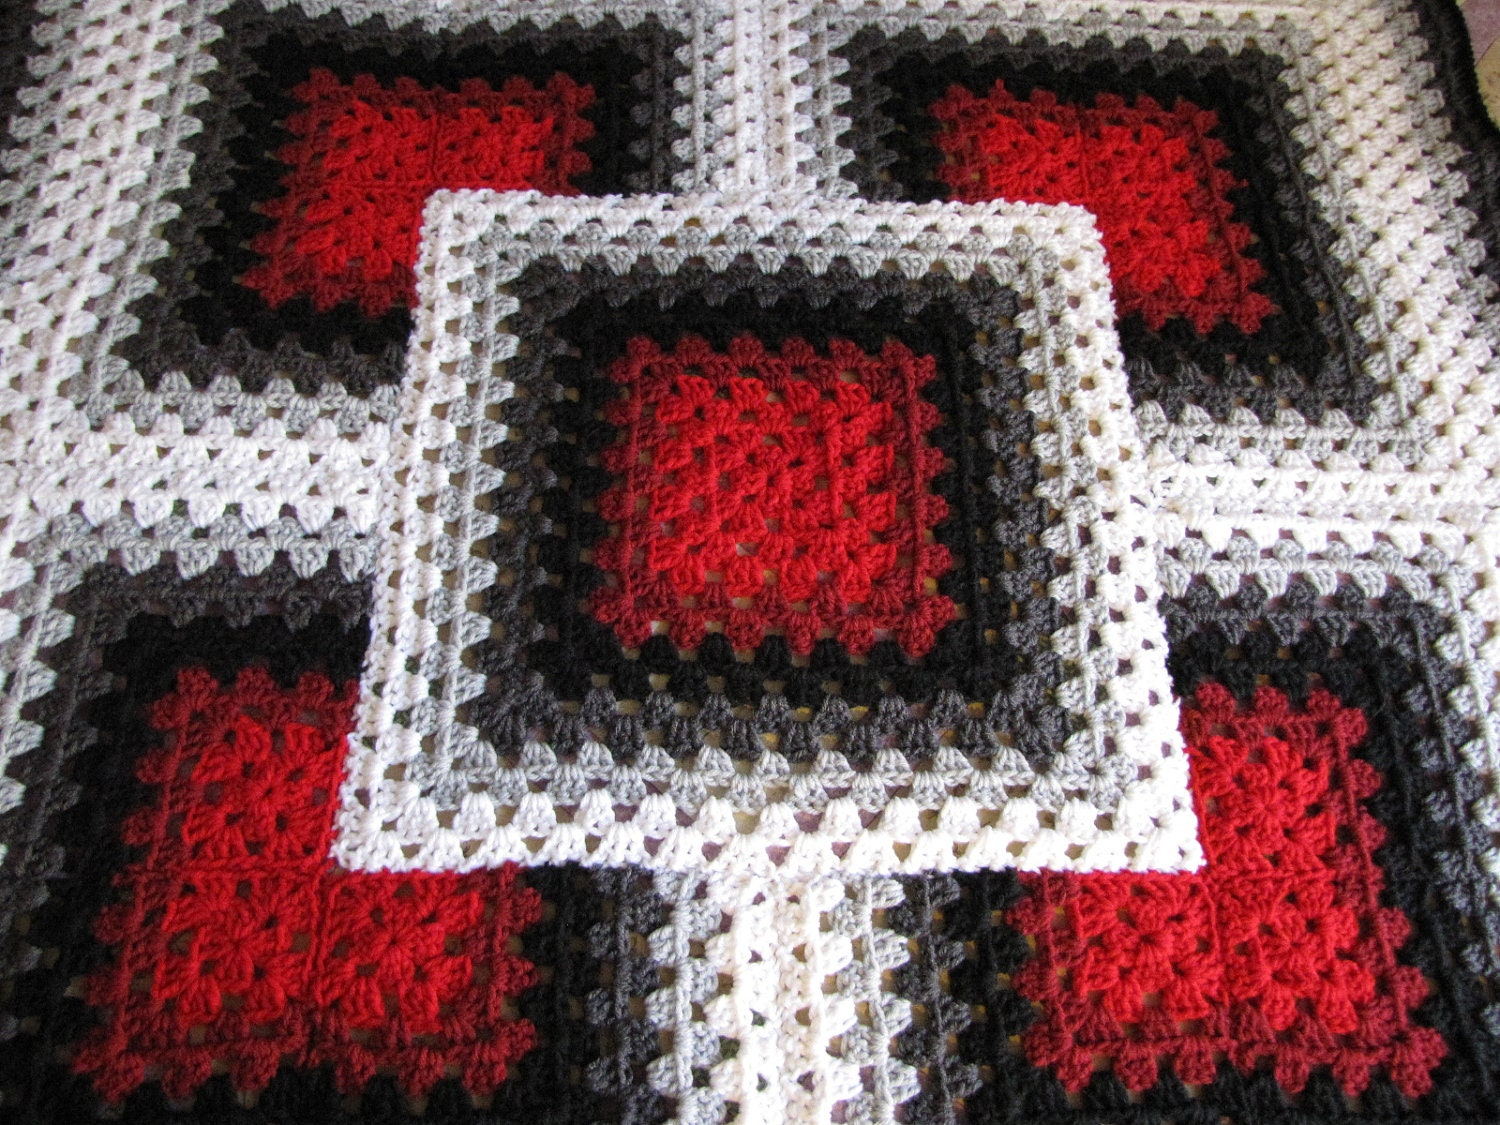 Red Black White Bold Design Crochet Afghan Baby Afghan Lap